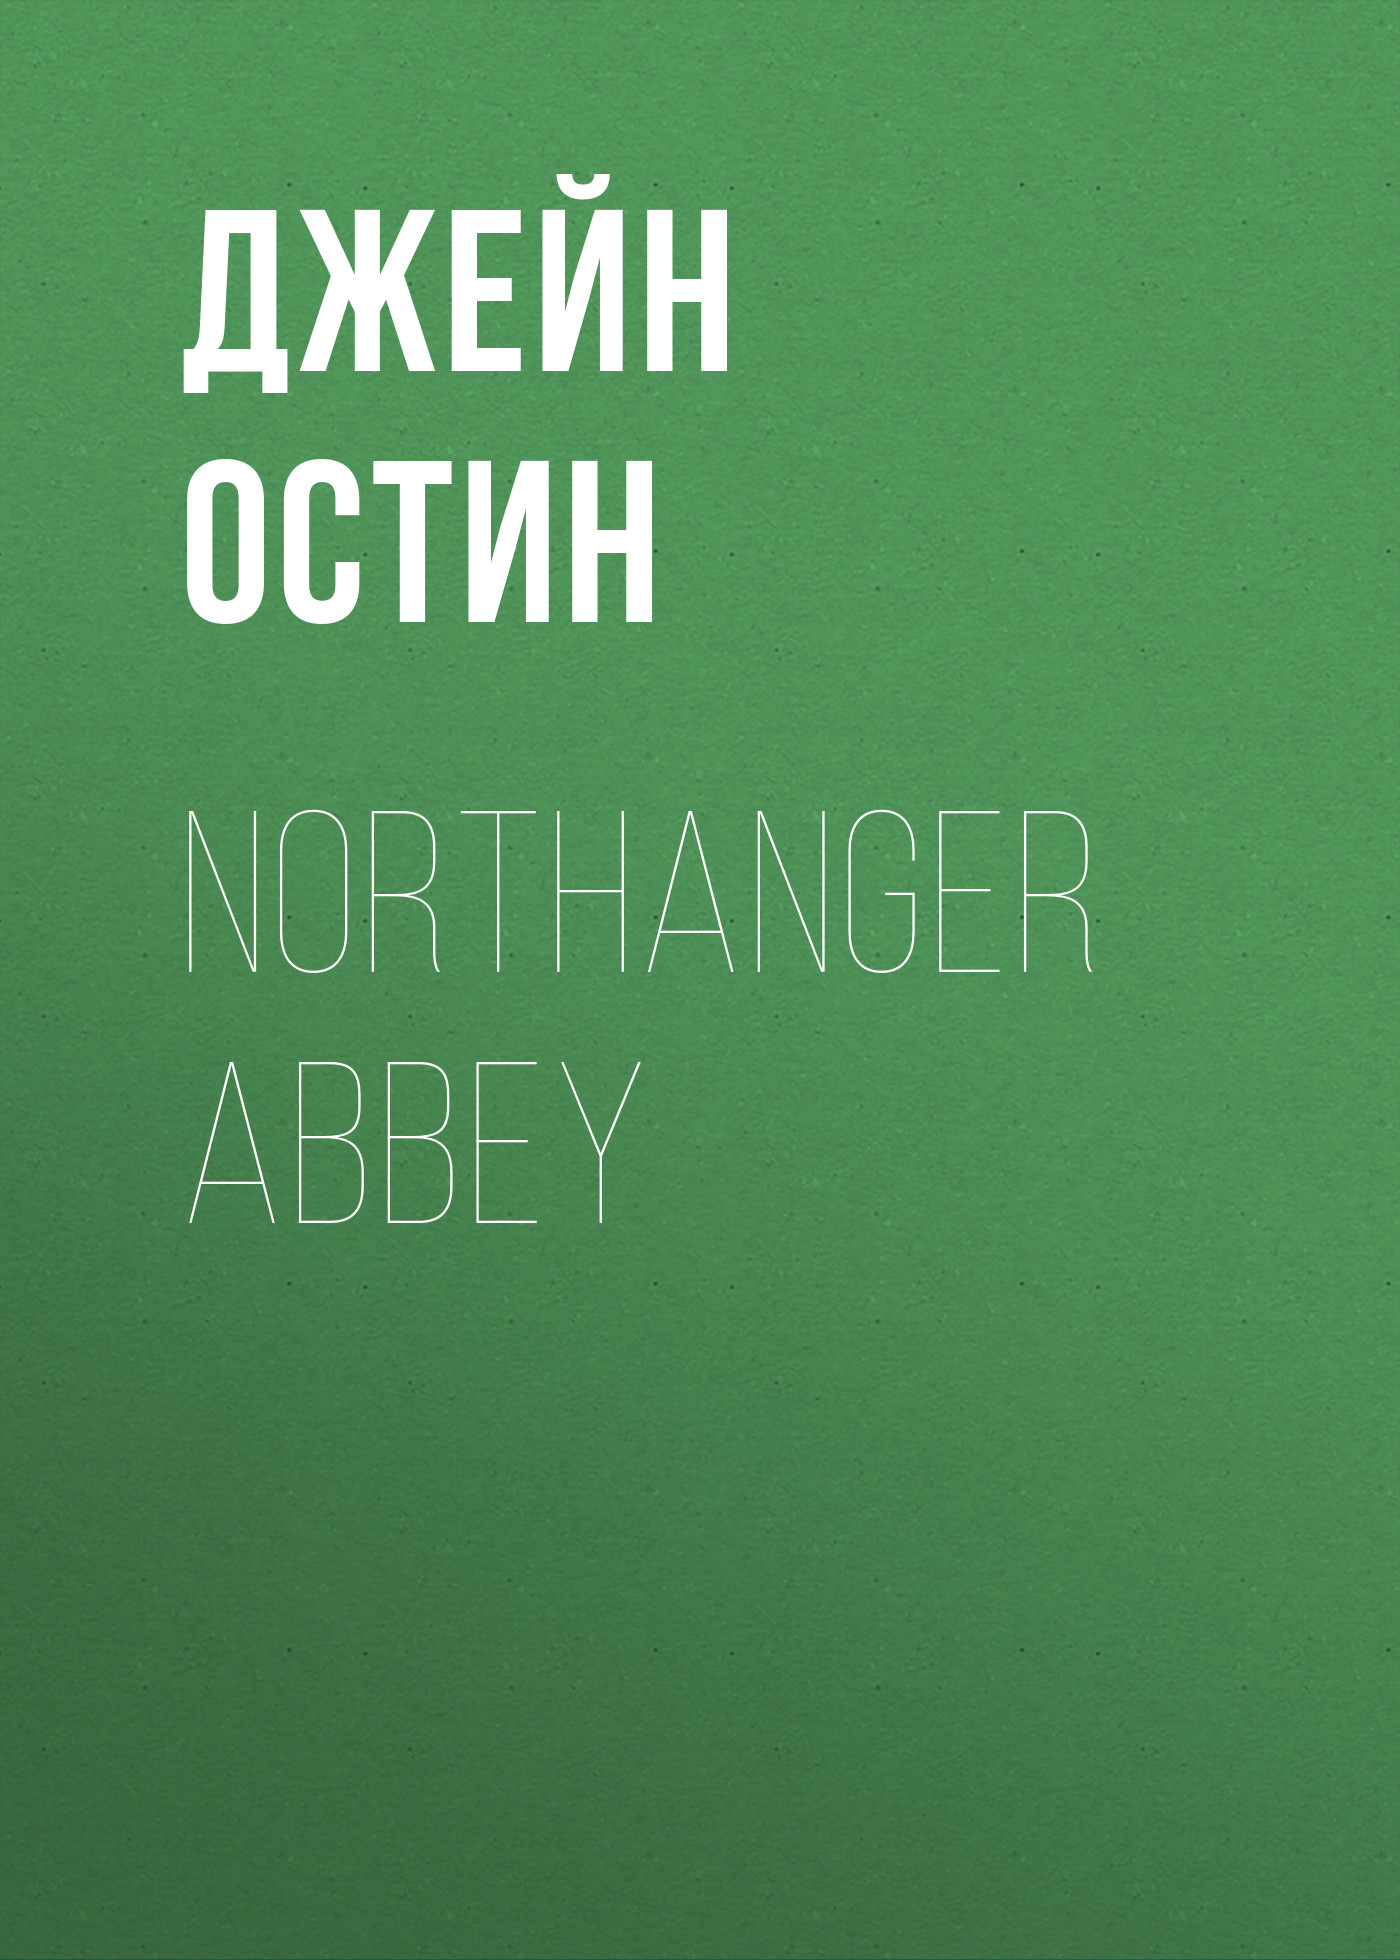 Фото - Джейн Остин Northanger Abbey michael jenner farthing abbey